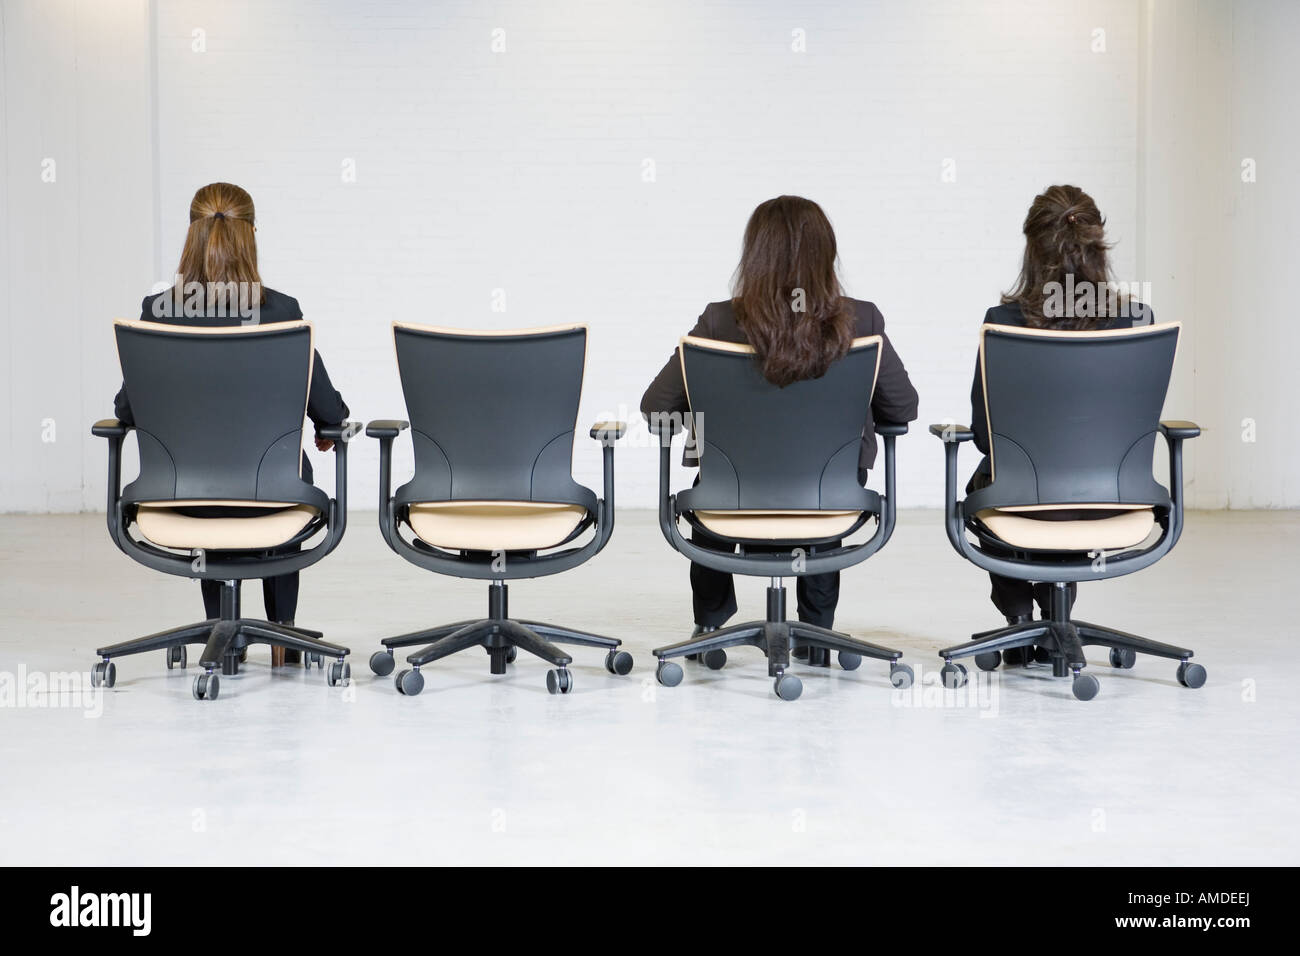 office furniture for women. Rear View Of Business Women Sitting On Office Chairs. Furniture For R